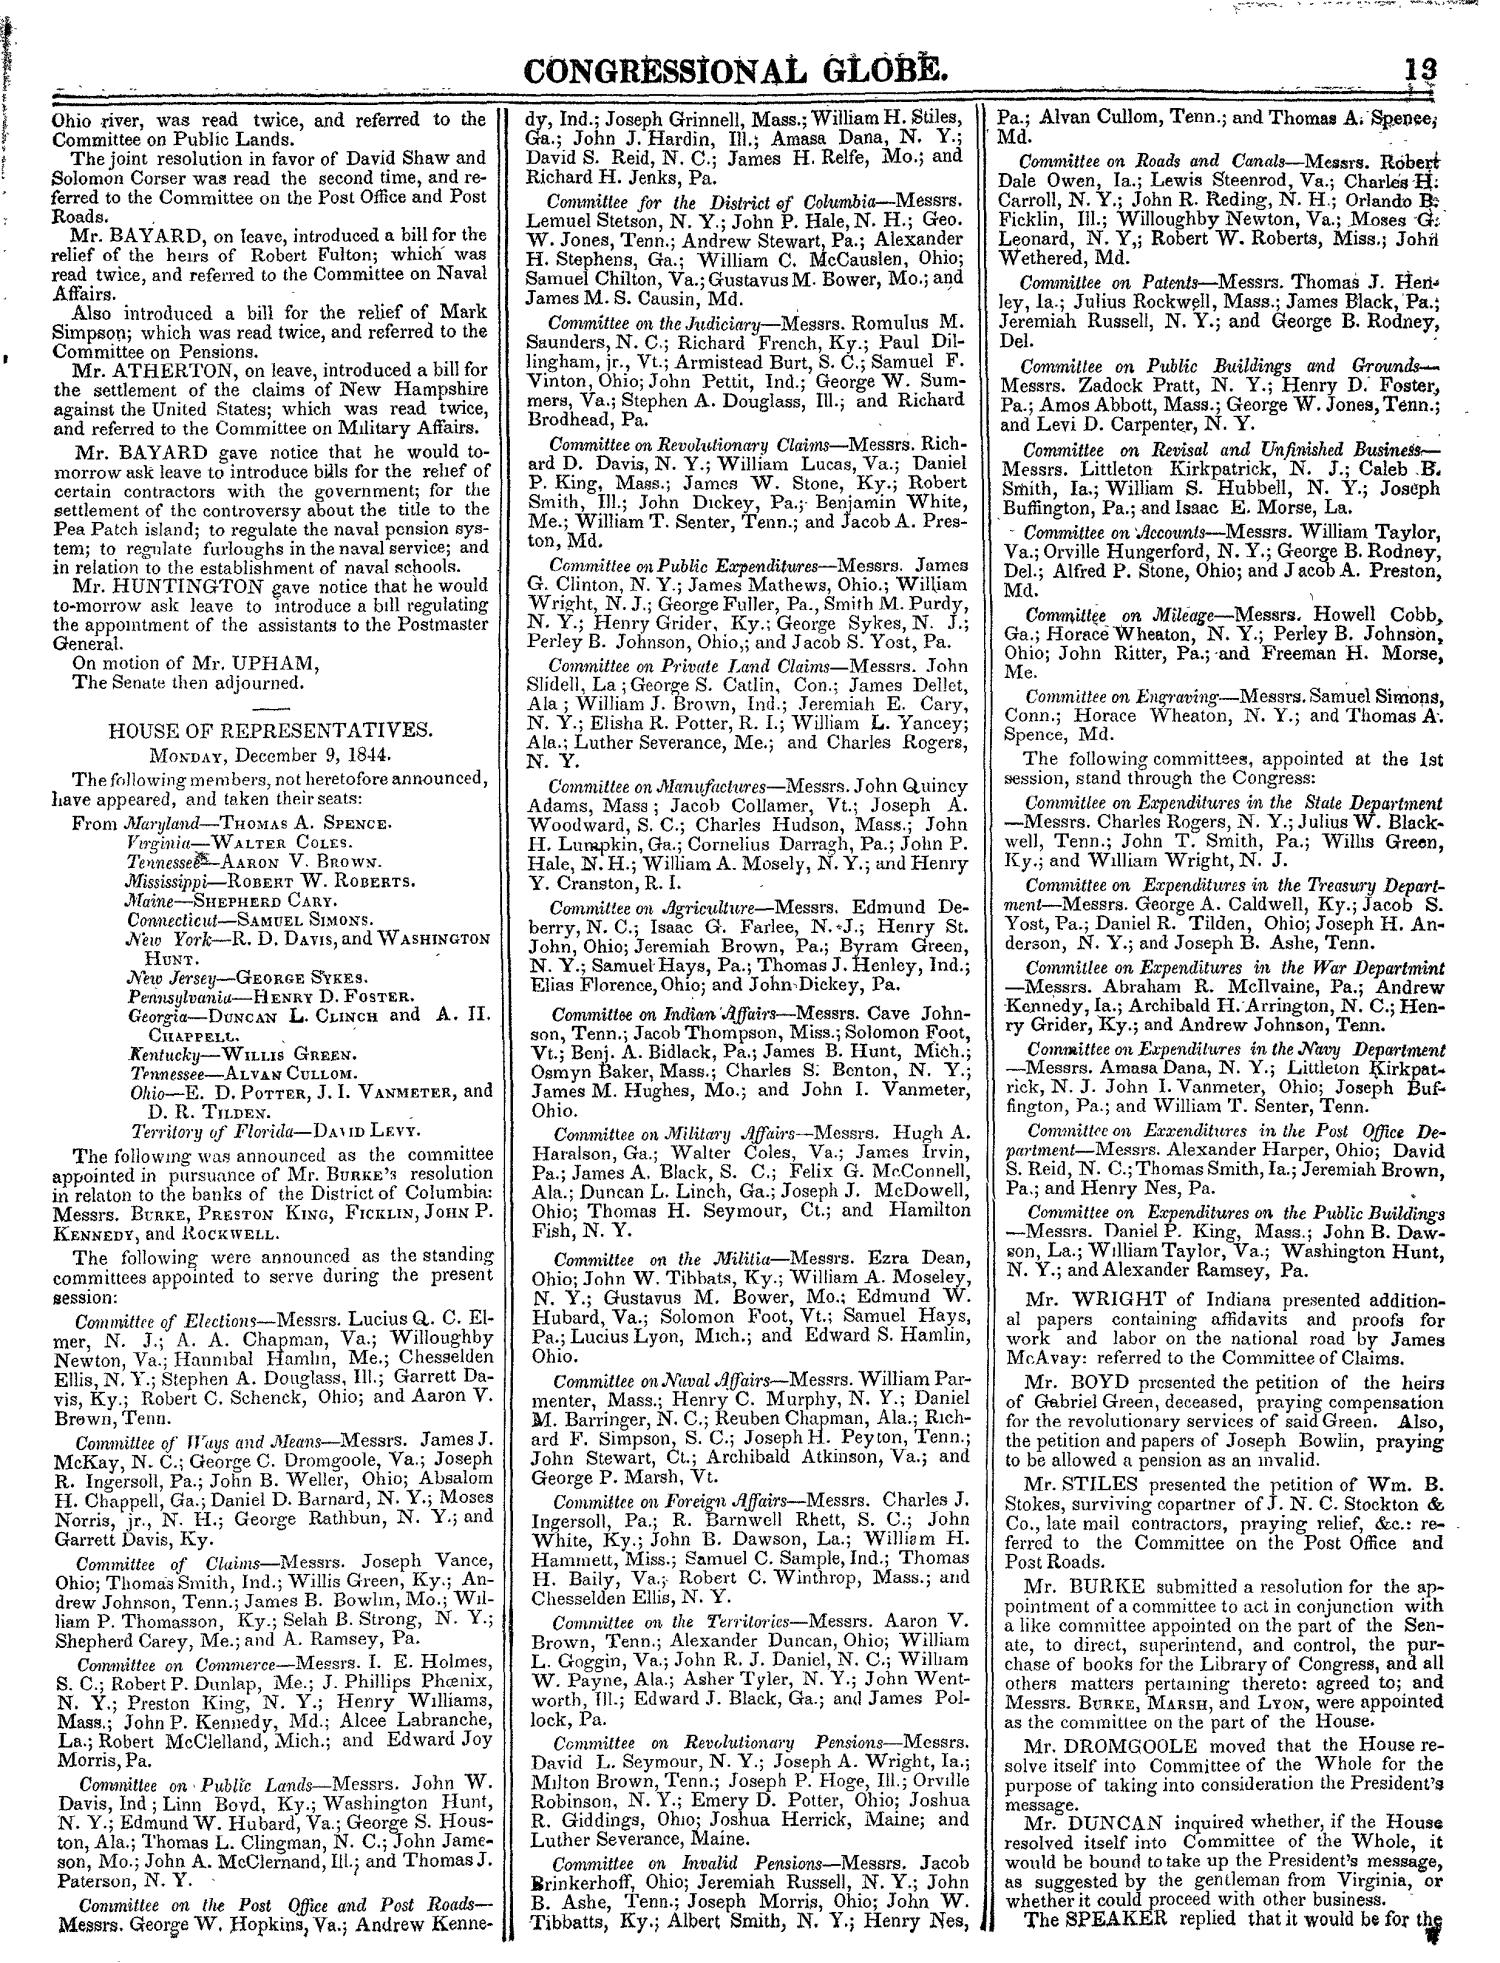 The Congressional Globe, Volume 14: Twenty-Eighth Congress, Second Session                                                                                                      13